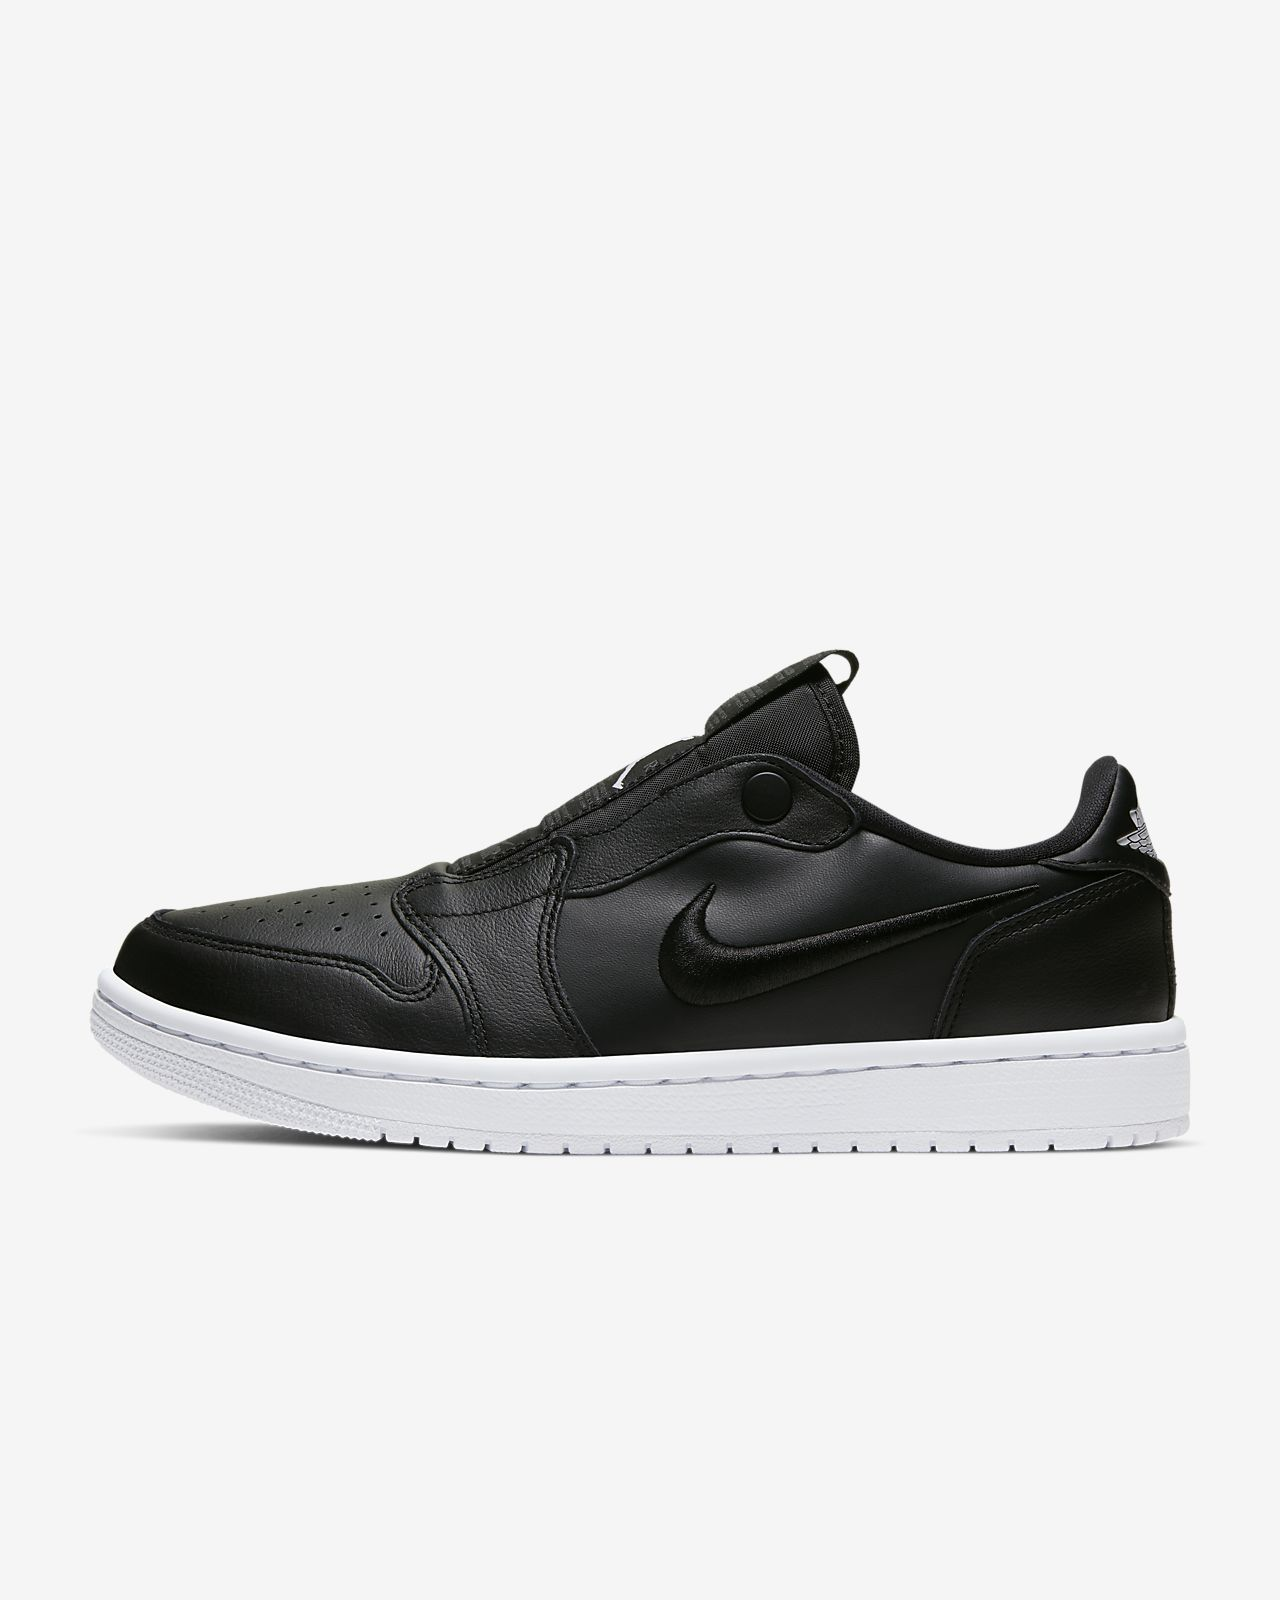 Air Jordan 1 Retro Low Slip Women's Shoe